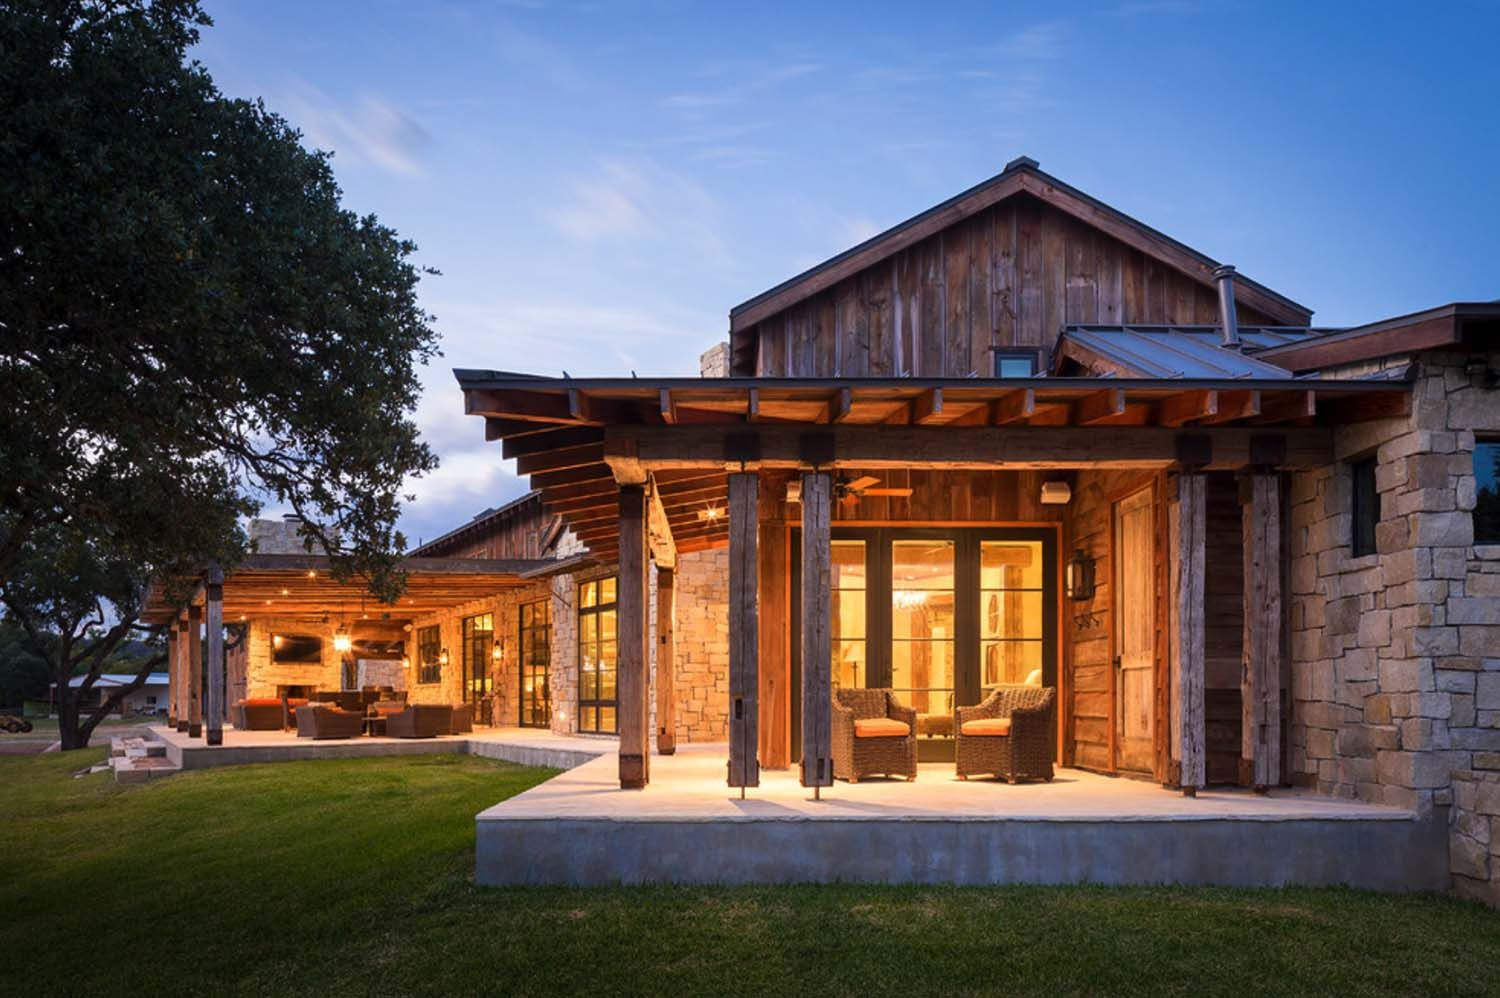 Modern rustic barn style retreat in texas hill country for Contemporary country house plans